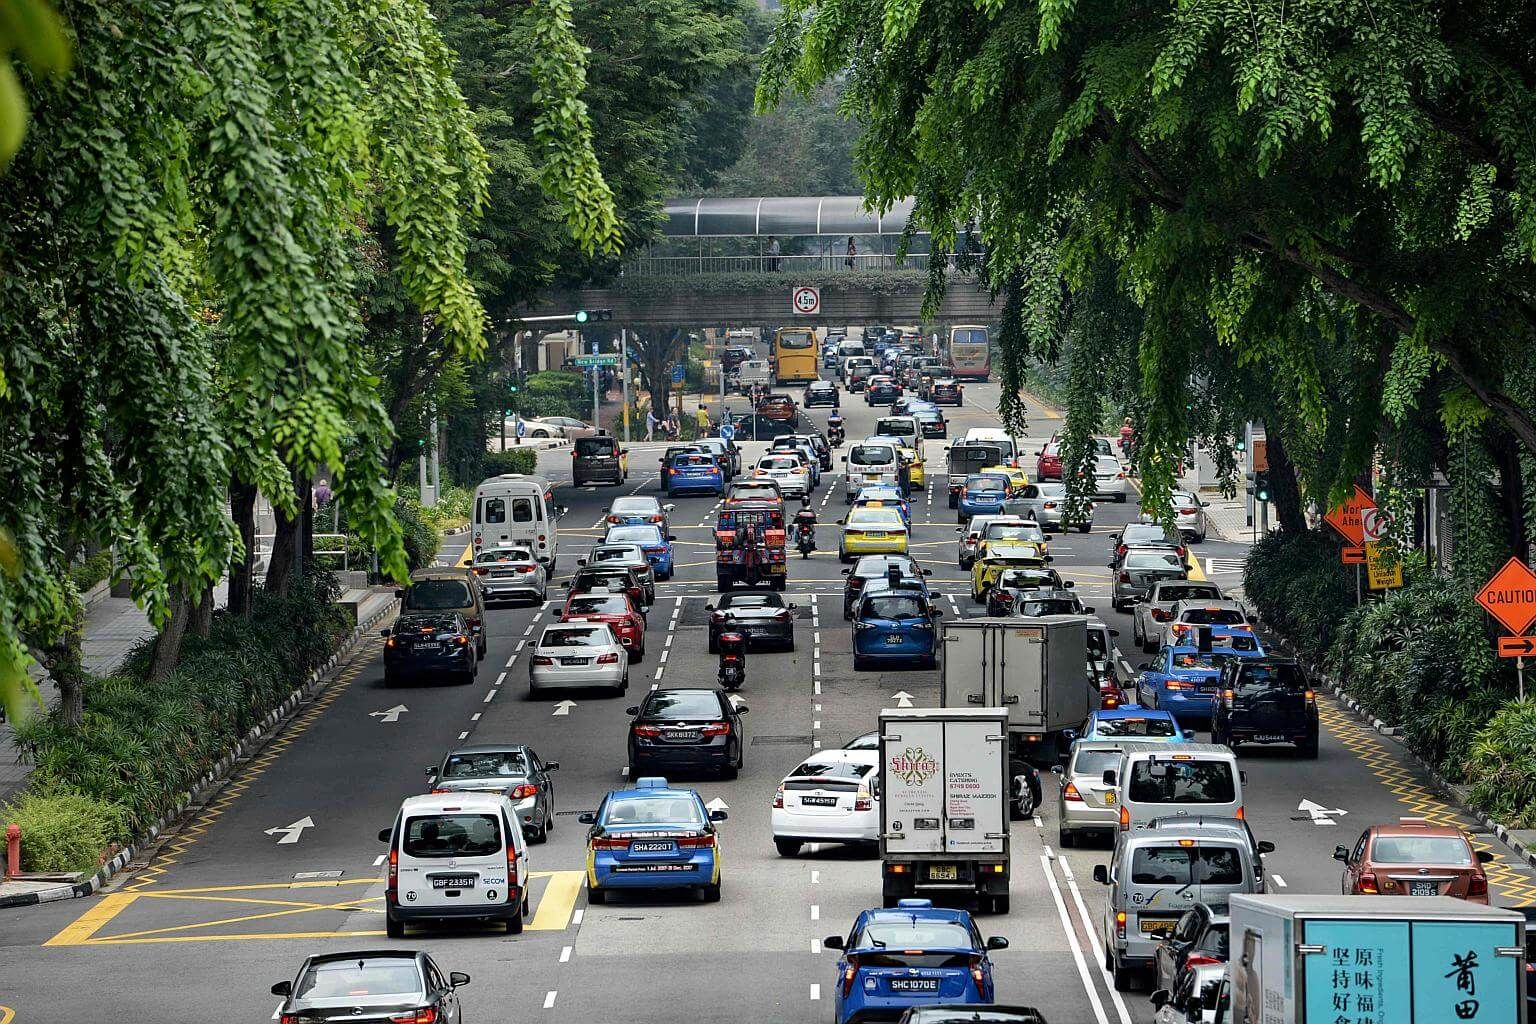 Uber\'s sale of unused cars drags COEs, Transport - THE BUSINESS TIMES